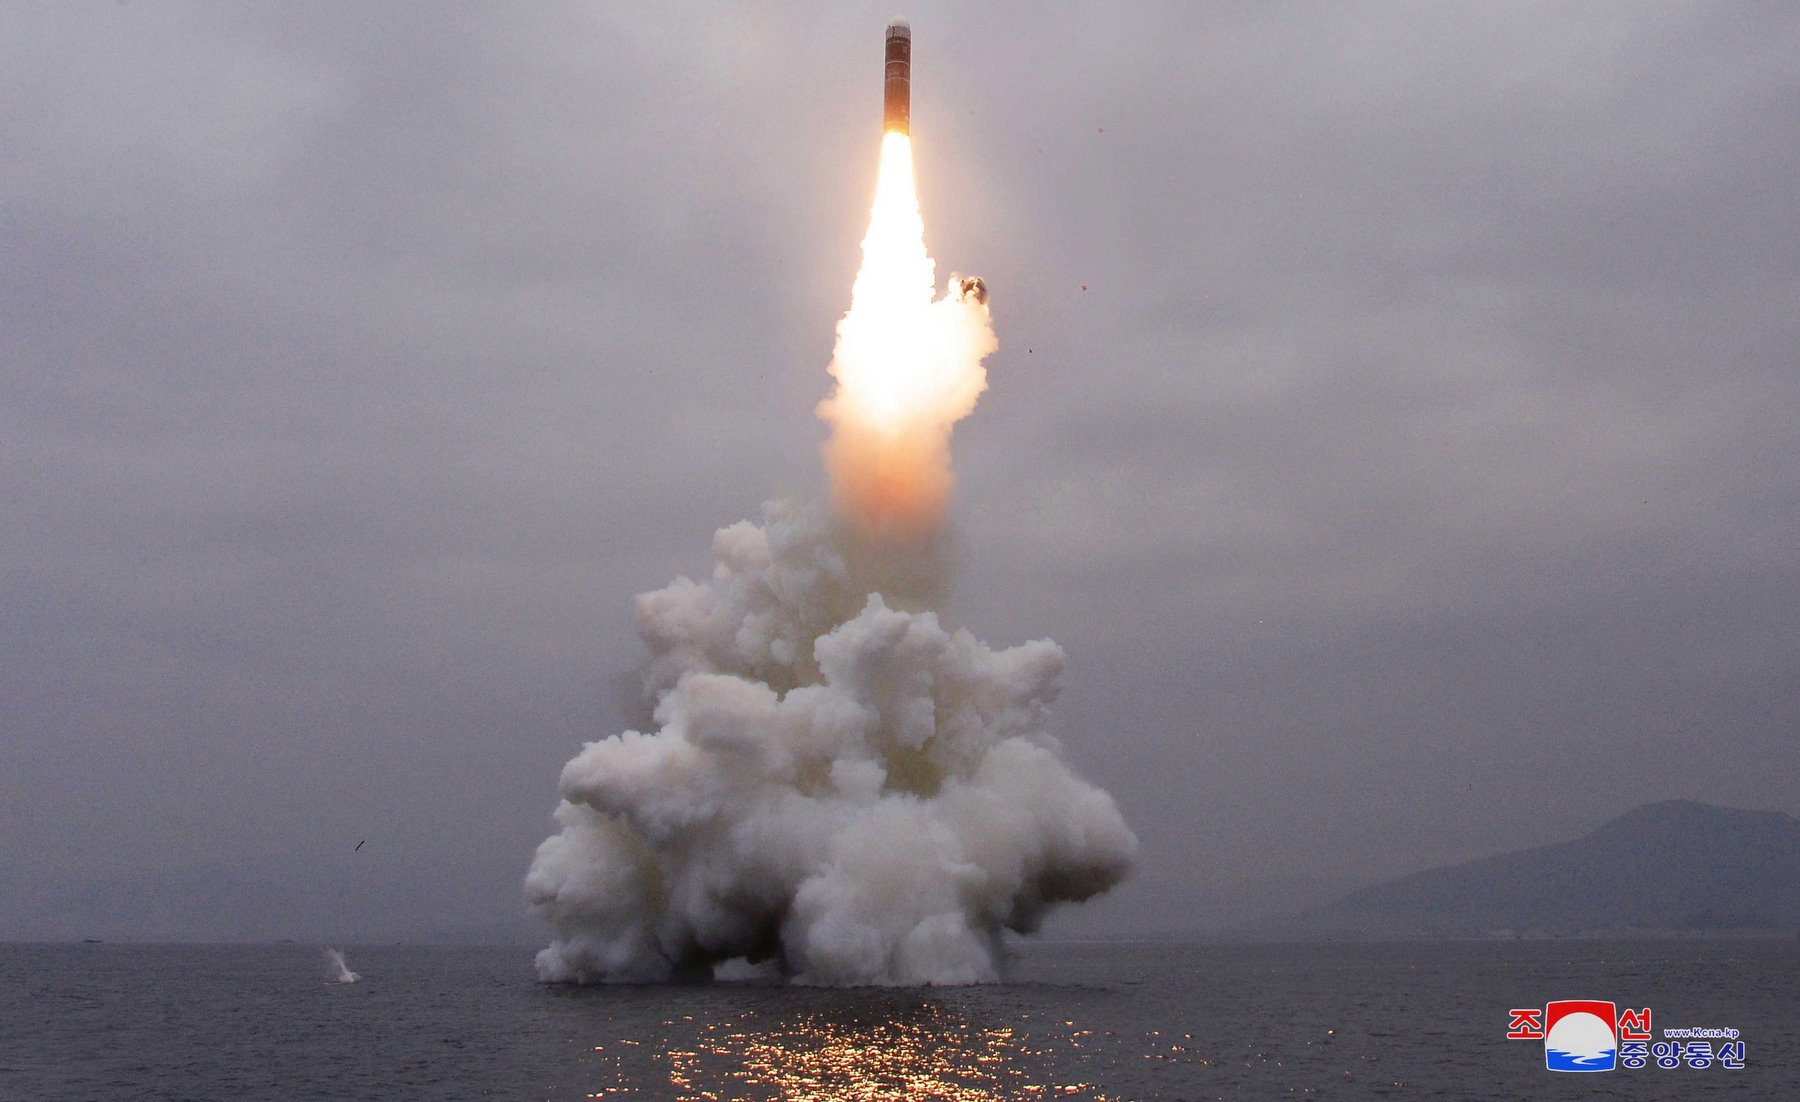 A photo released by the official North Korean Central News Agency (KCNA) shows the successful launch from a submarine of a Pukguksong-3, a new-type ballistic missile by the Academy of Defence Science of the Democratic People's Republic of Korea, in the wa